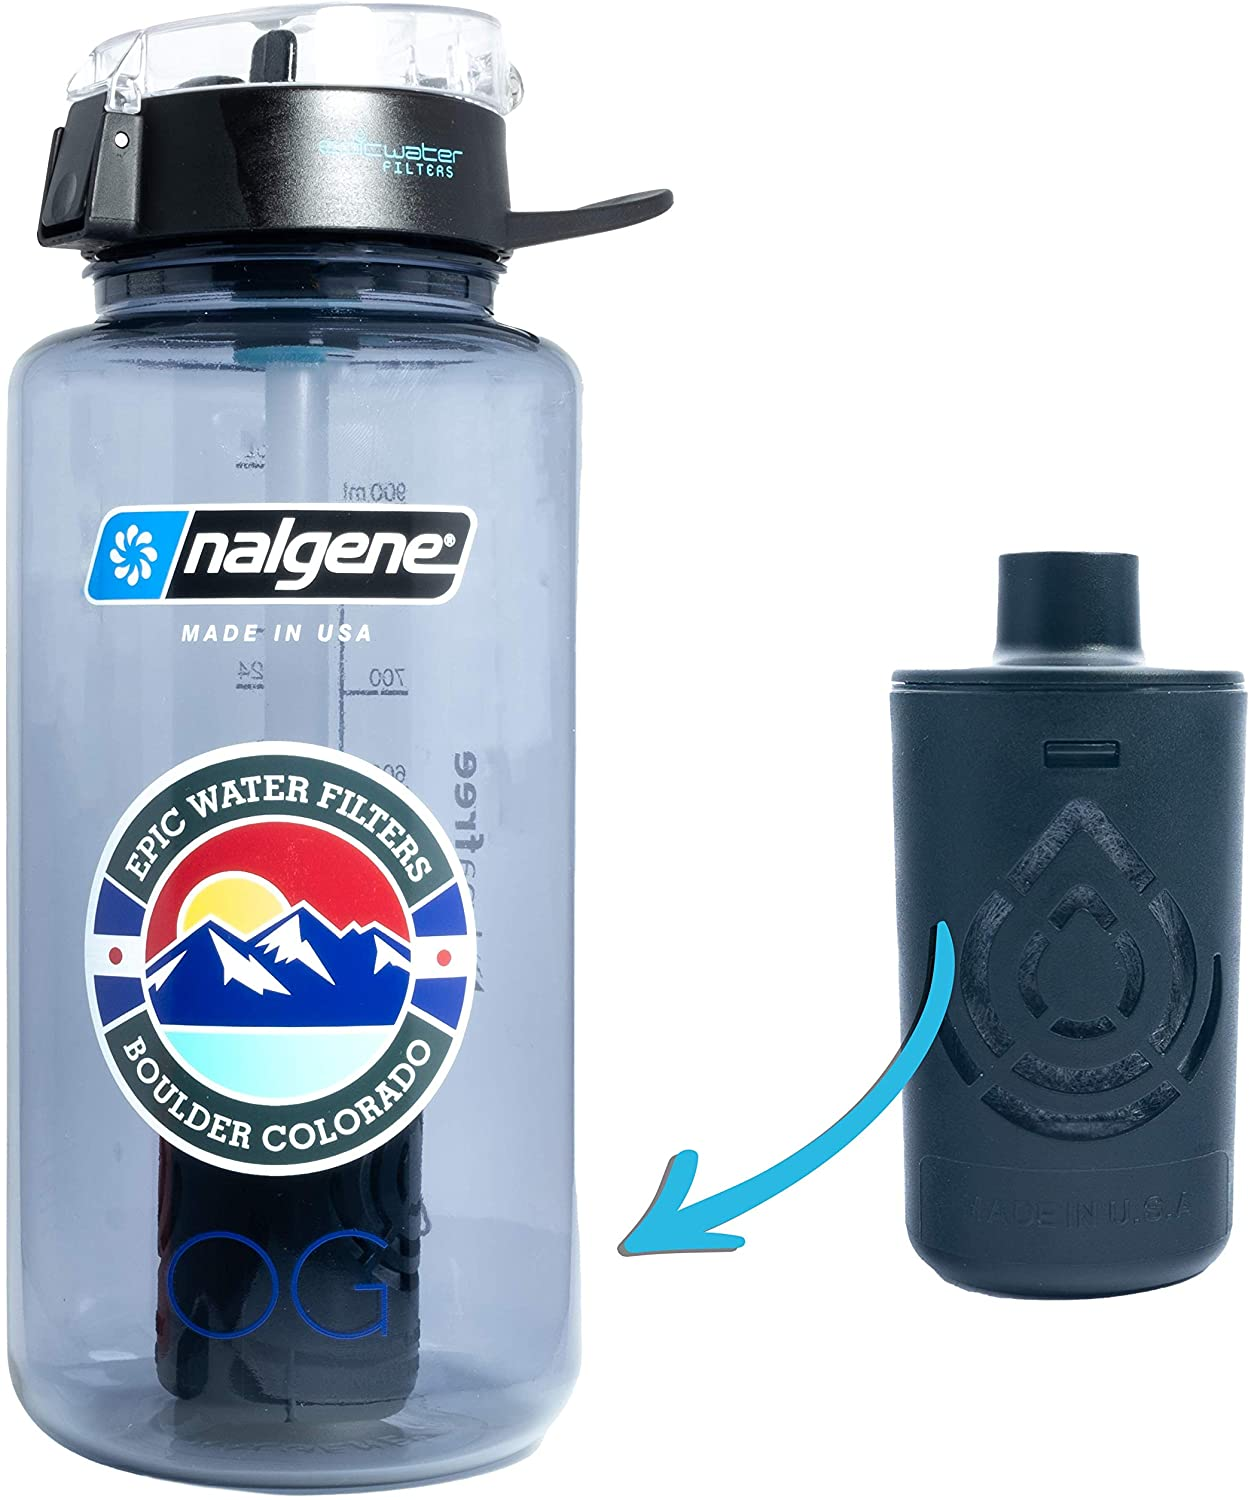 Epic Nalgene 32-Ounce Water Bottle With Filter